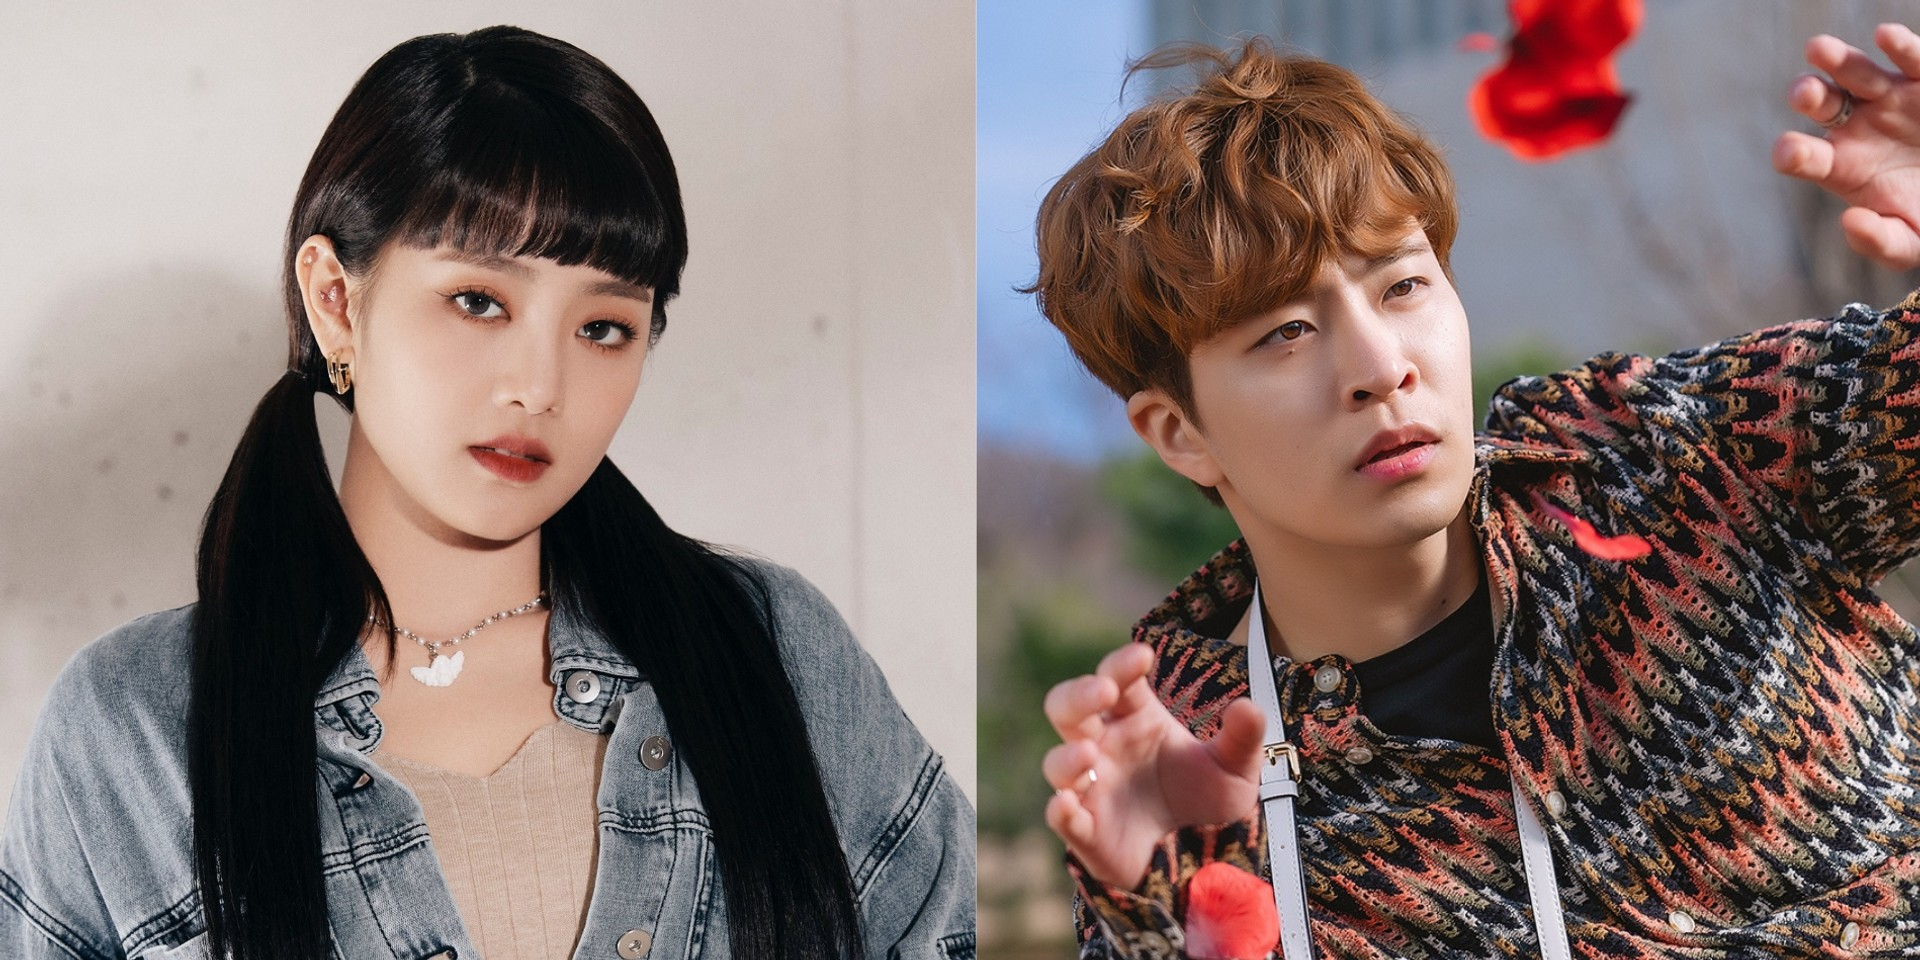 Netflix sitcom starring GOT7's Youngjae and (G)I-DLE's Minnie, 'So Not Worth It', to premiere this June